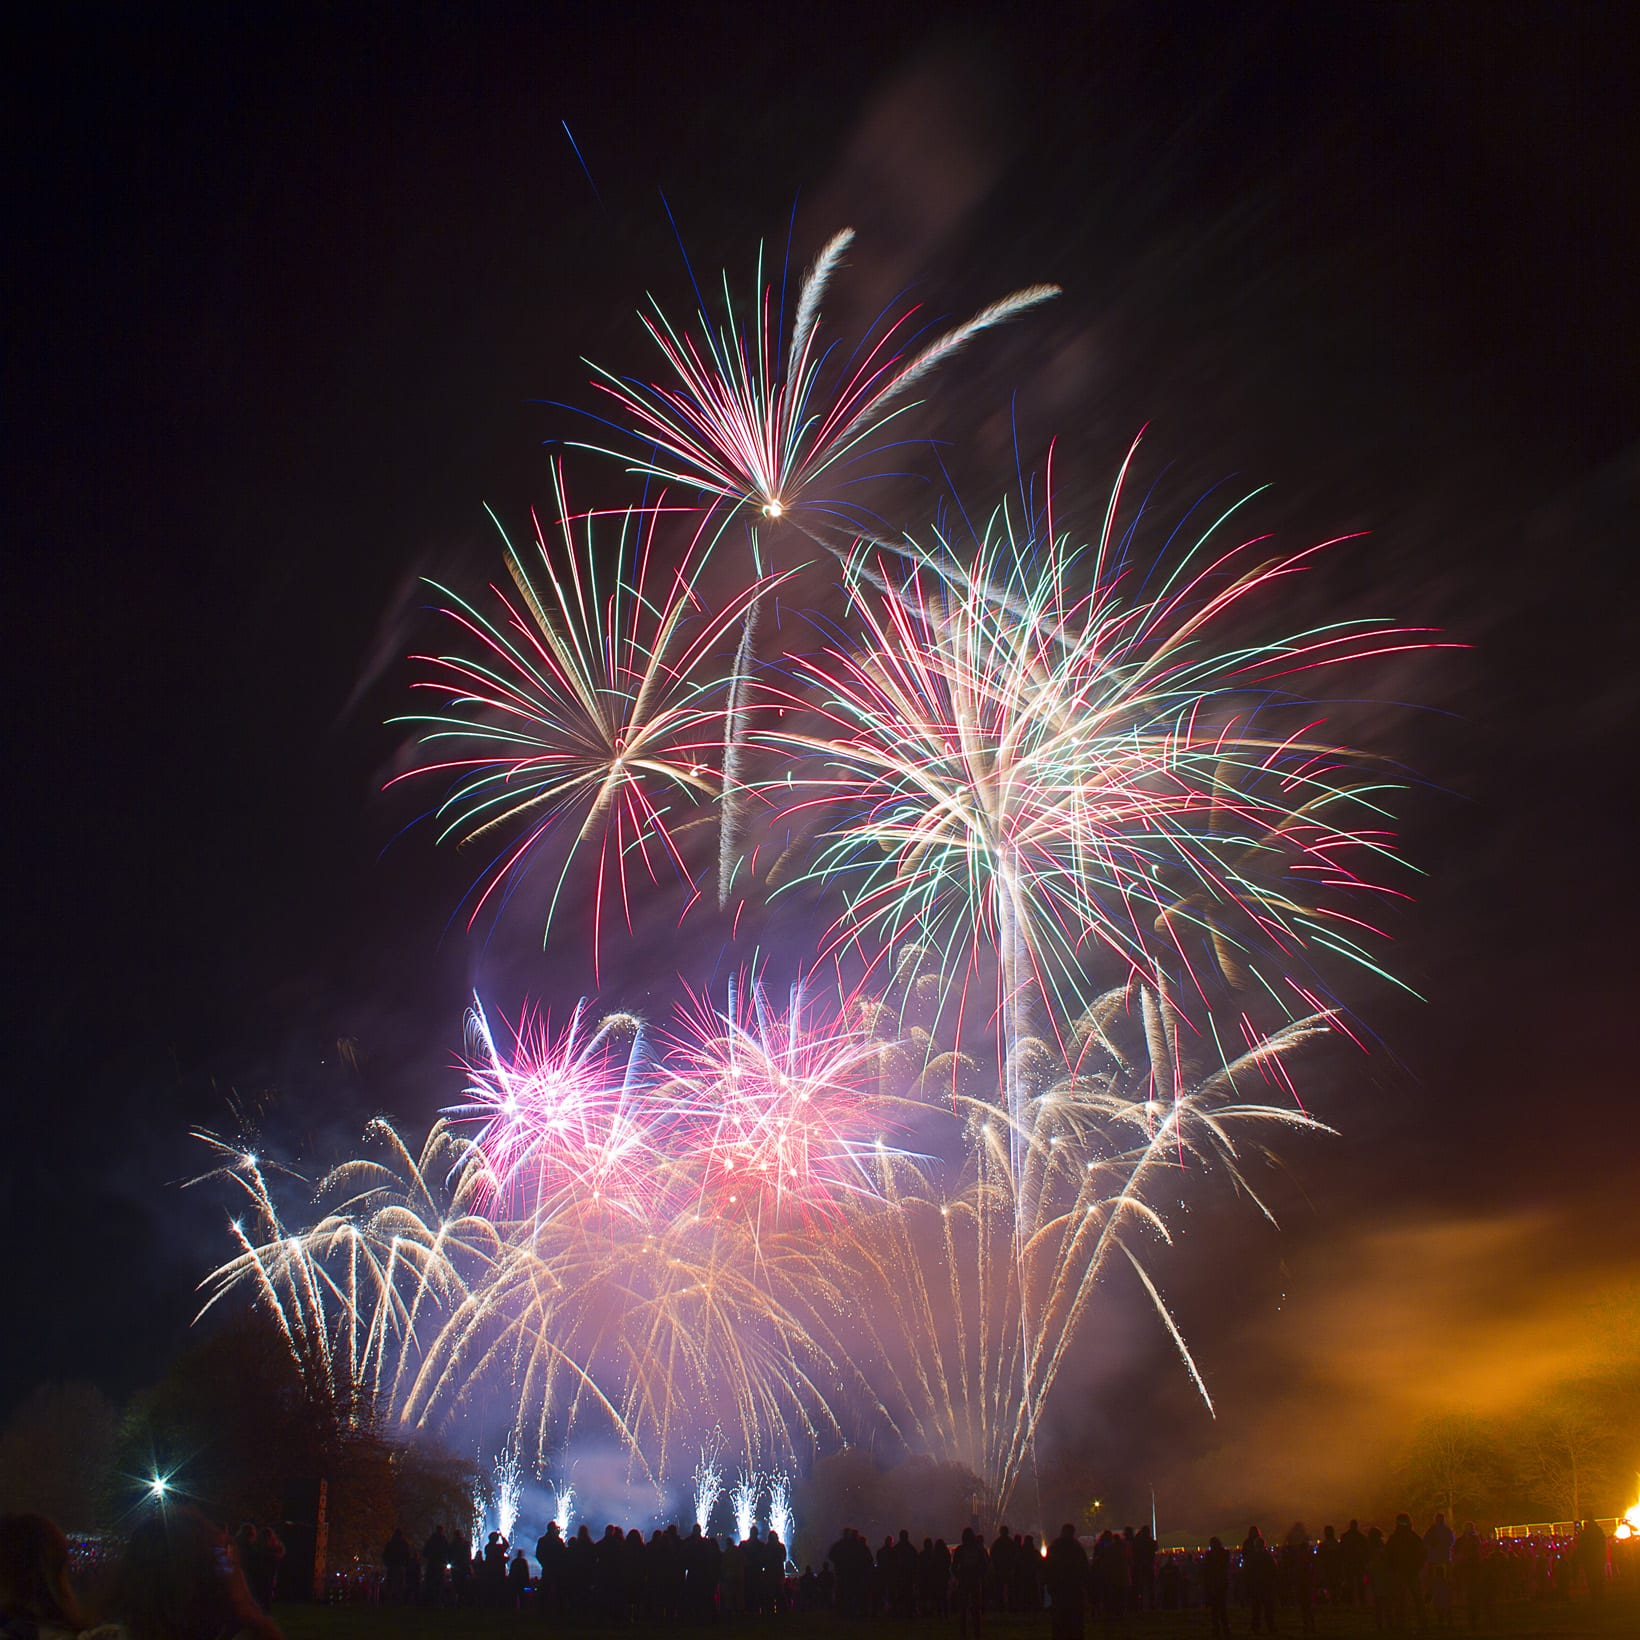 Celebrating 5th November Guy Fawkes Night in England